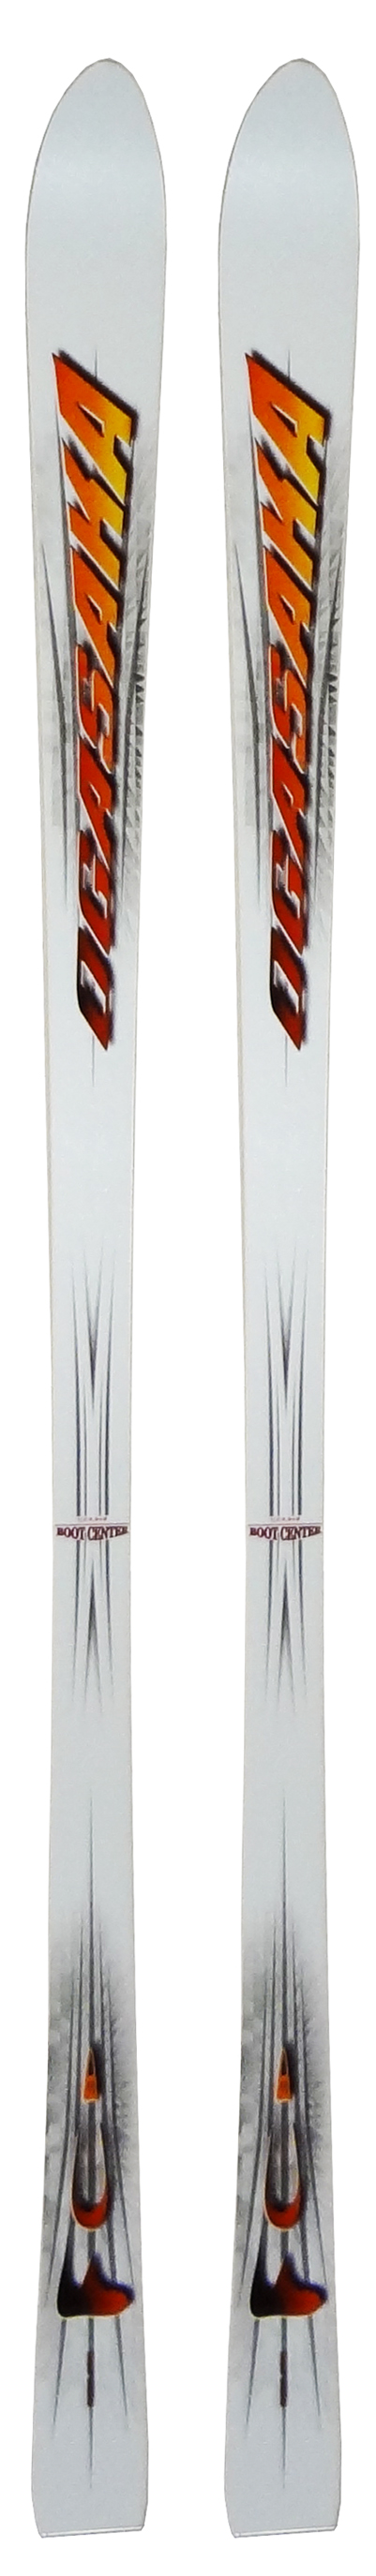 Ogasaka 00 - 01 FC White Skis (No Bindings / Flat) NEW !!  180,185cm